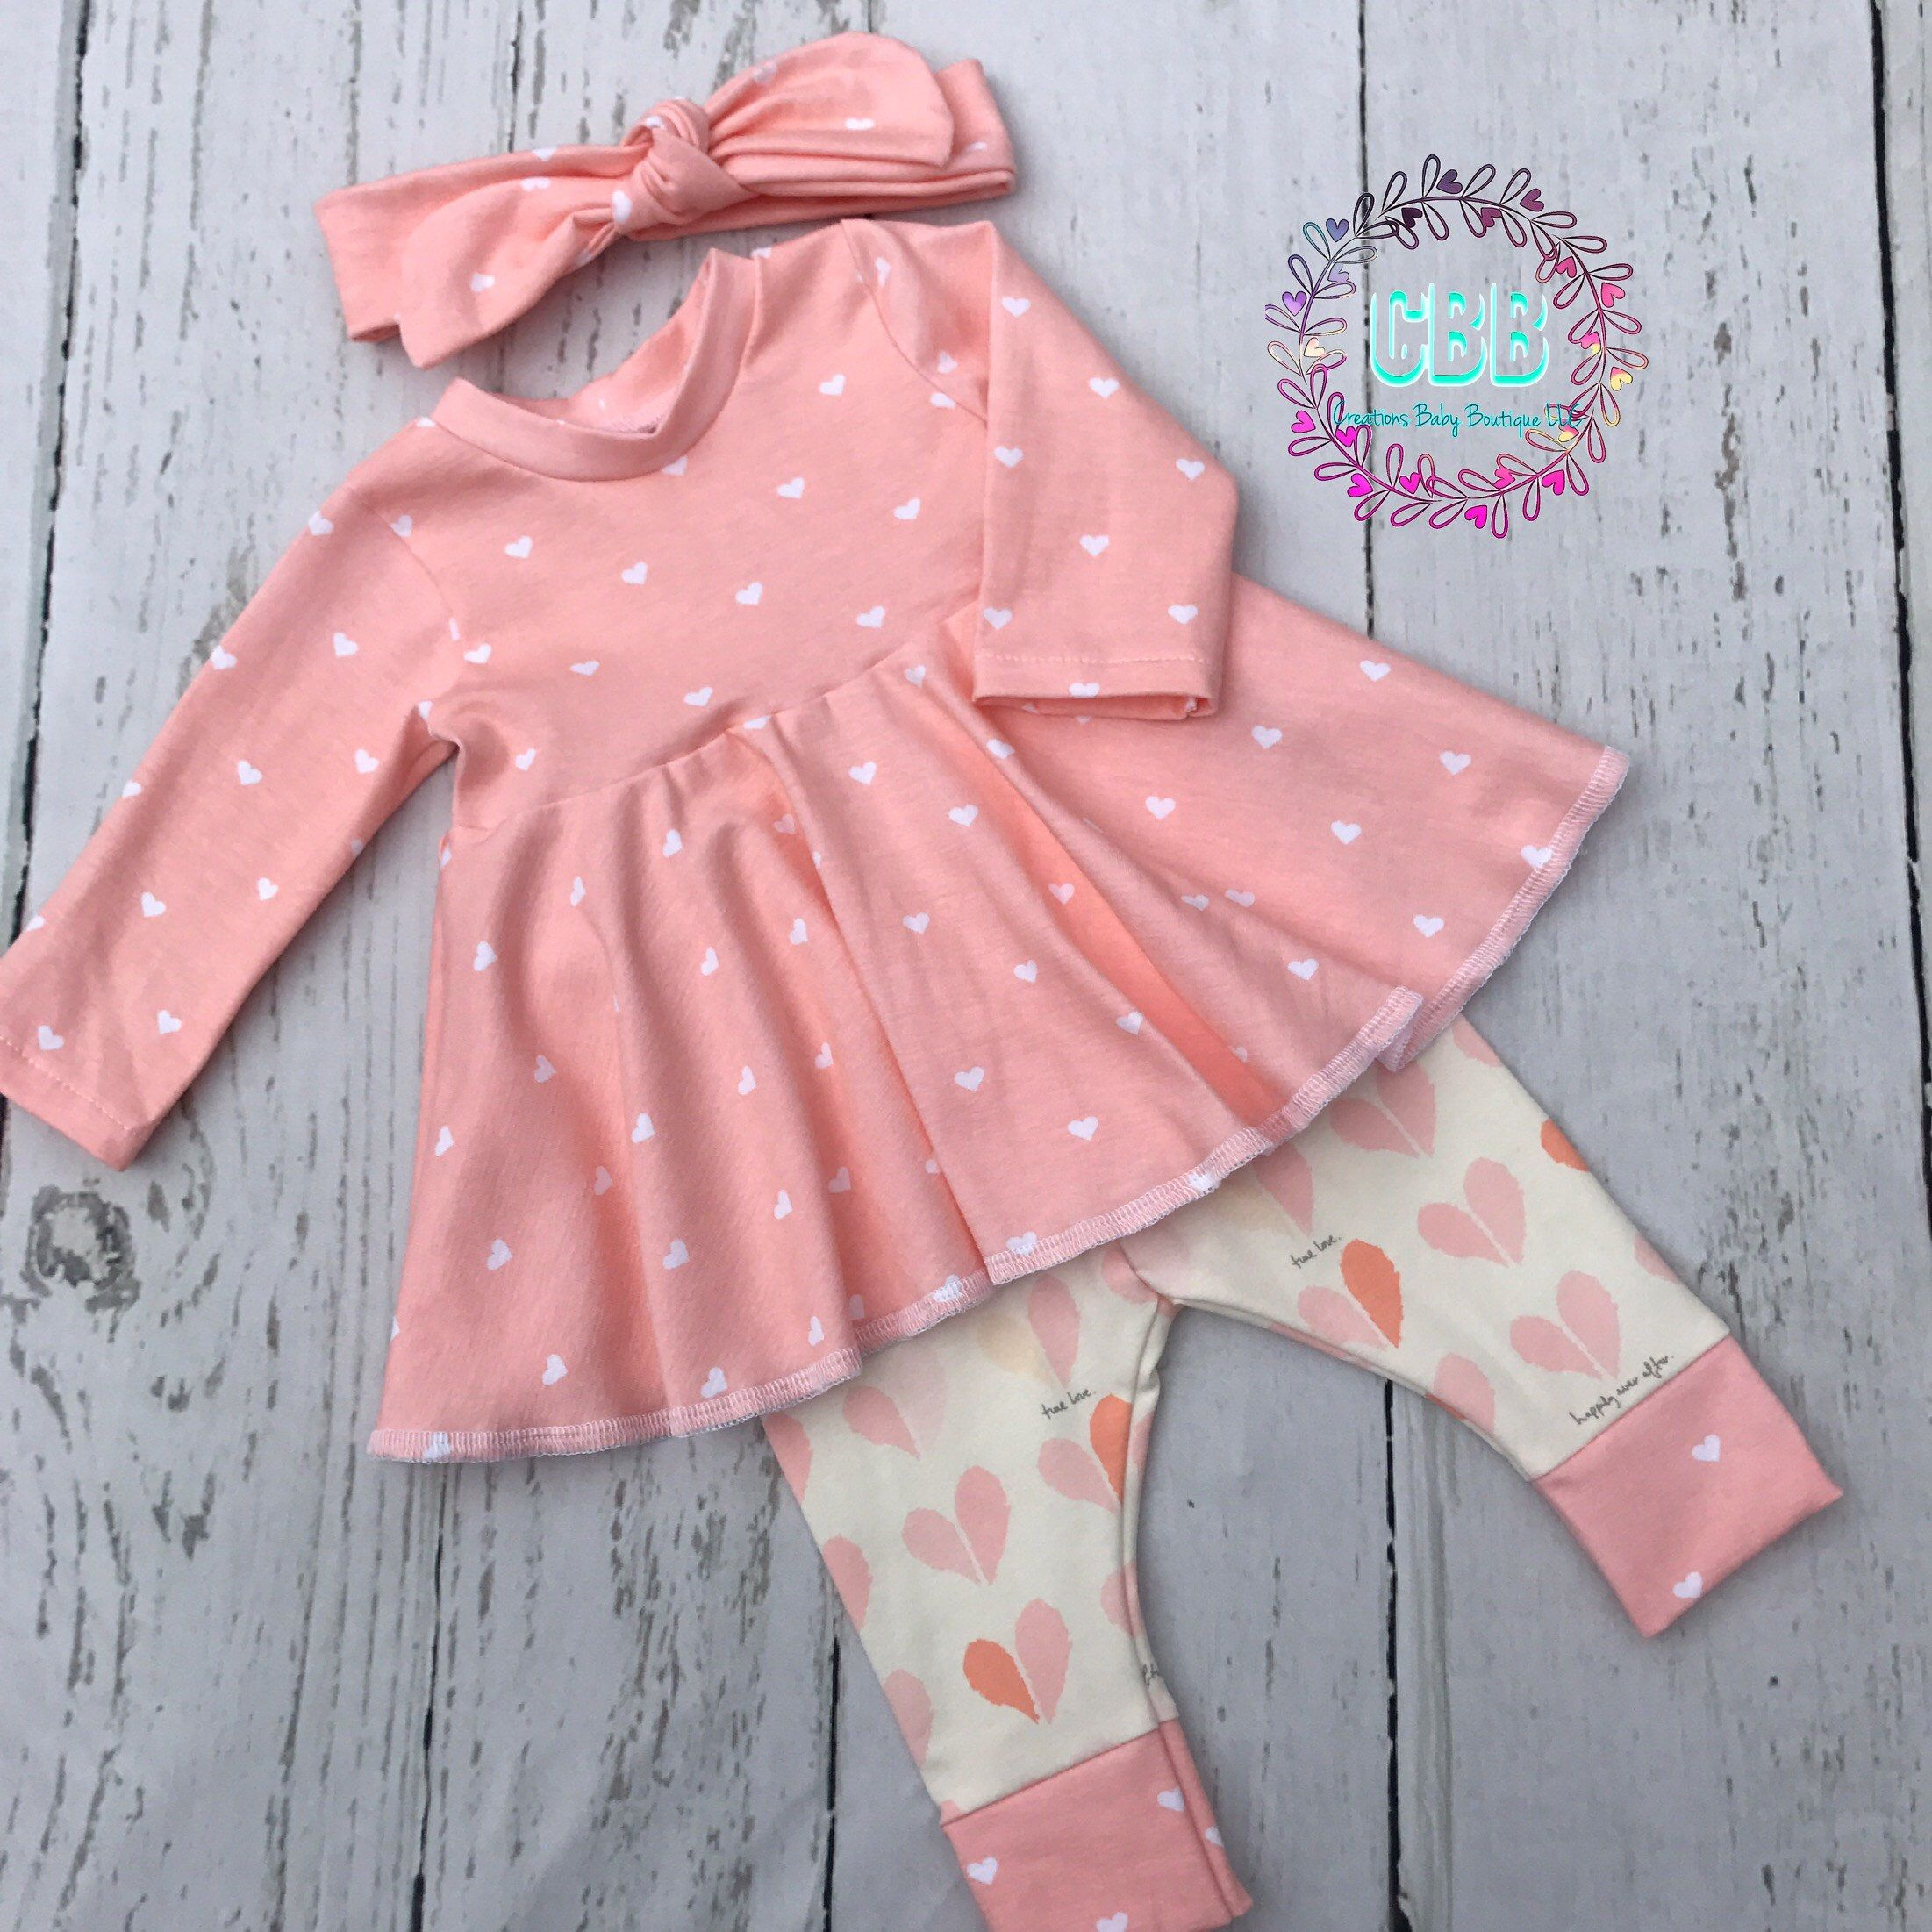 7f8fb8b75999 Pin by Lorena on Baby Girl Outfits